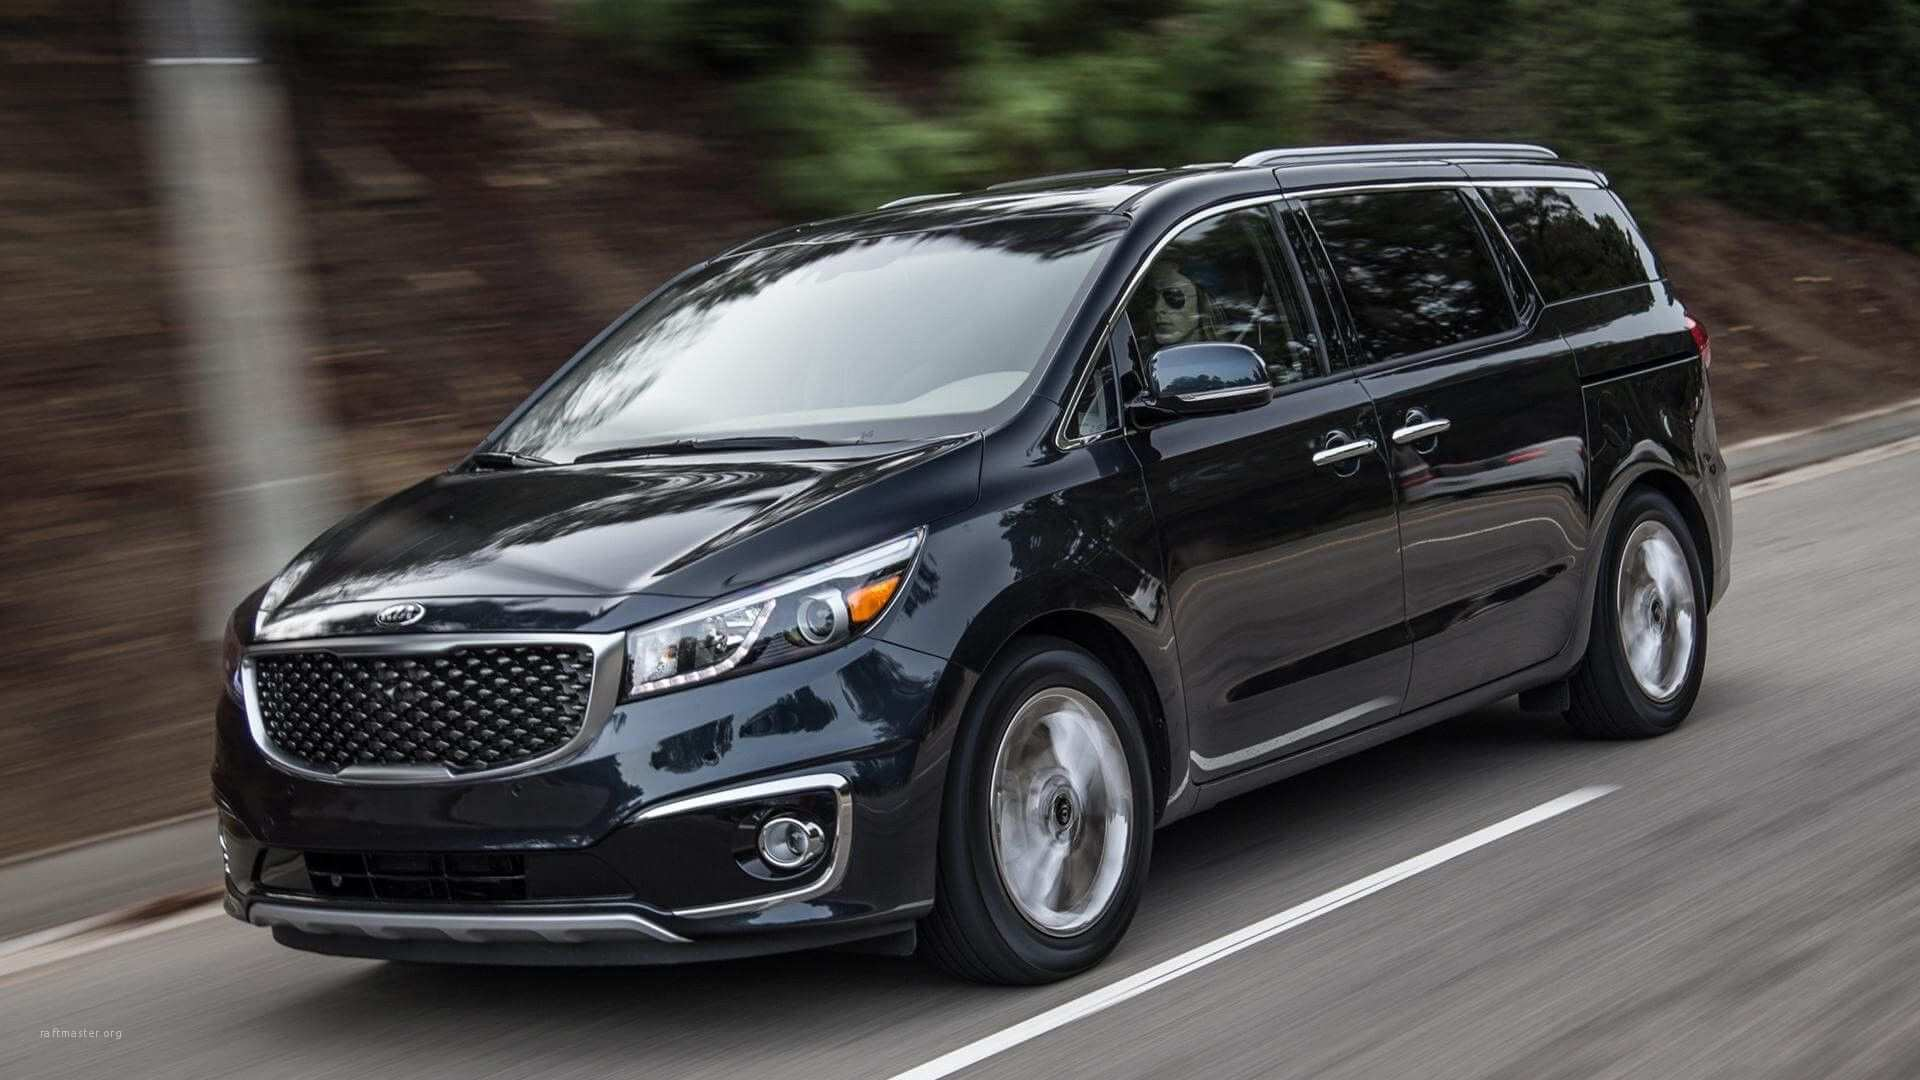 24 Gallery of Kia Grand Carnival 2020 Exterior History with Kia Grand Carnival 2020 Exterior